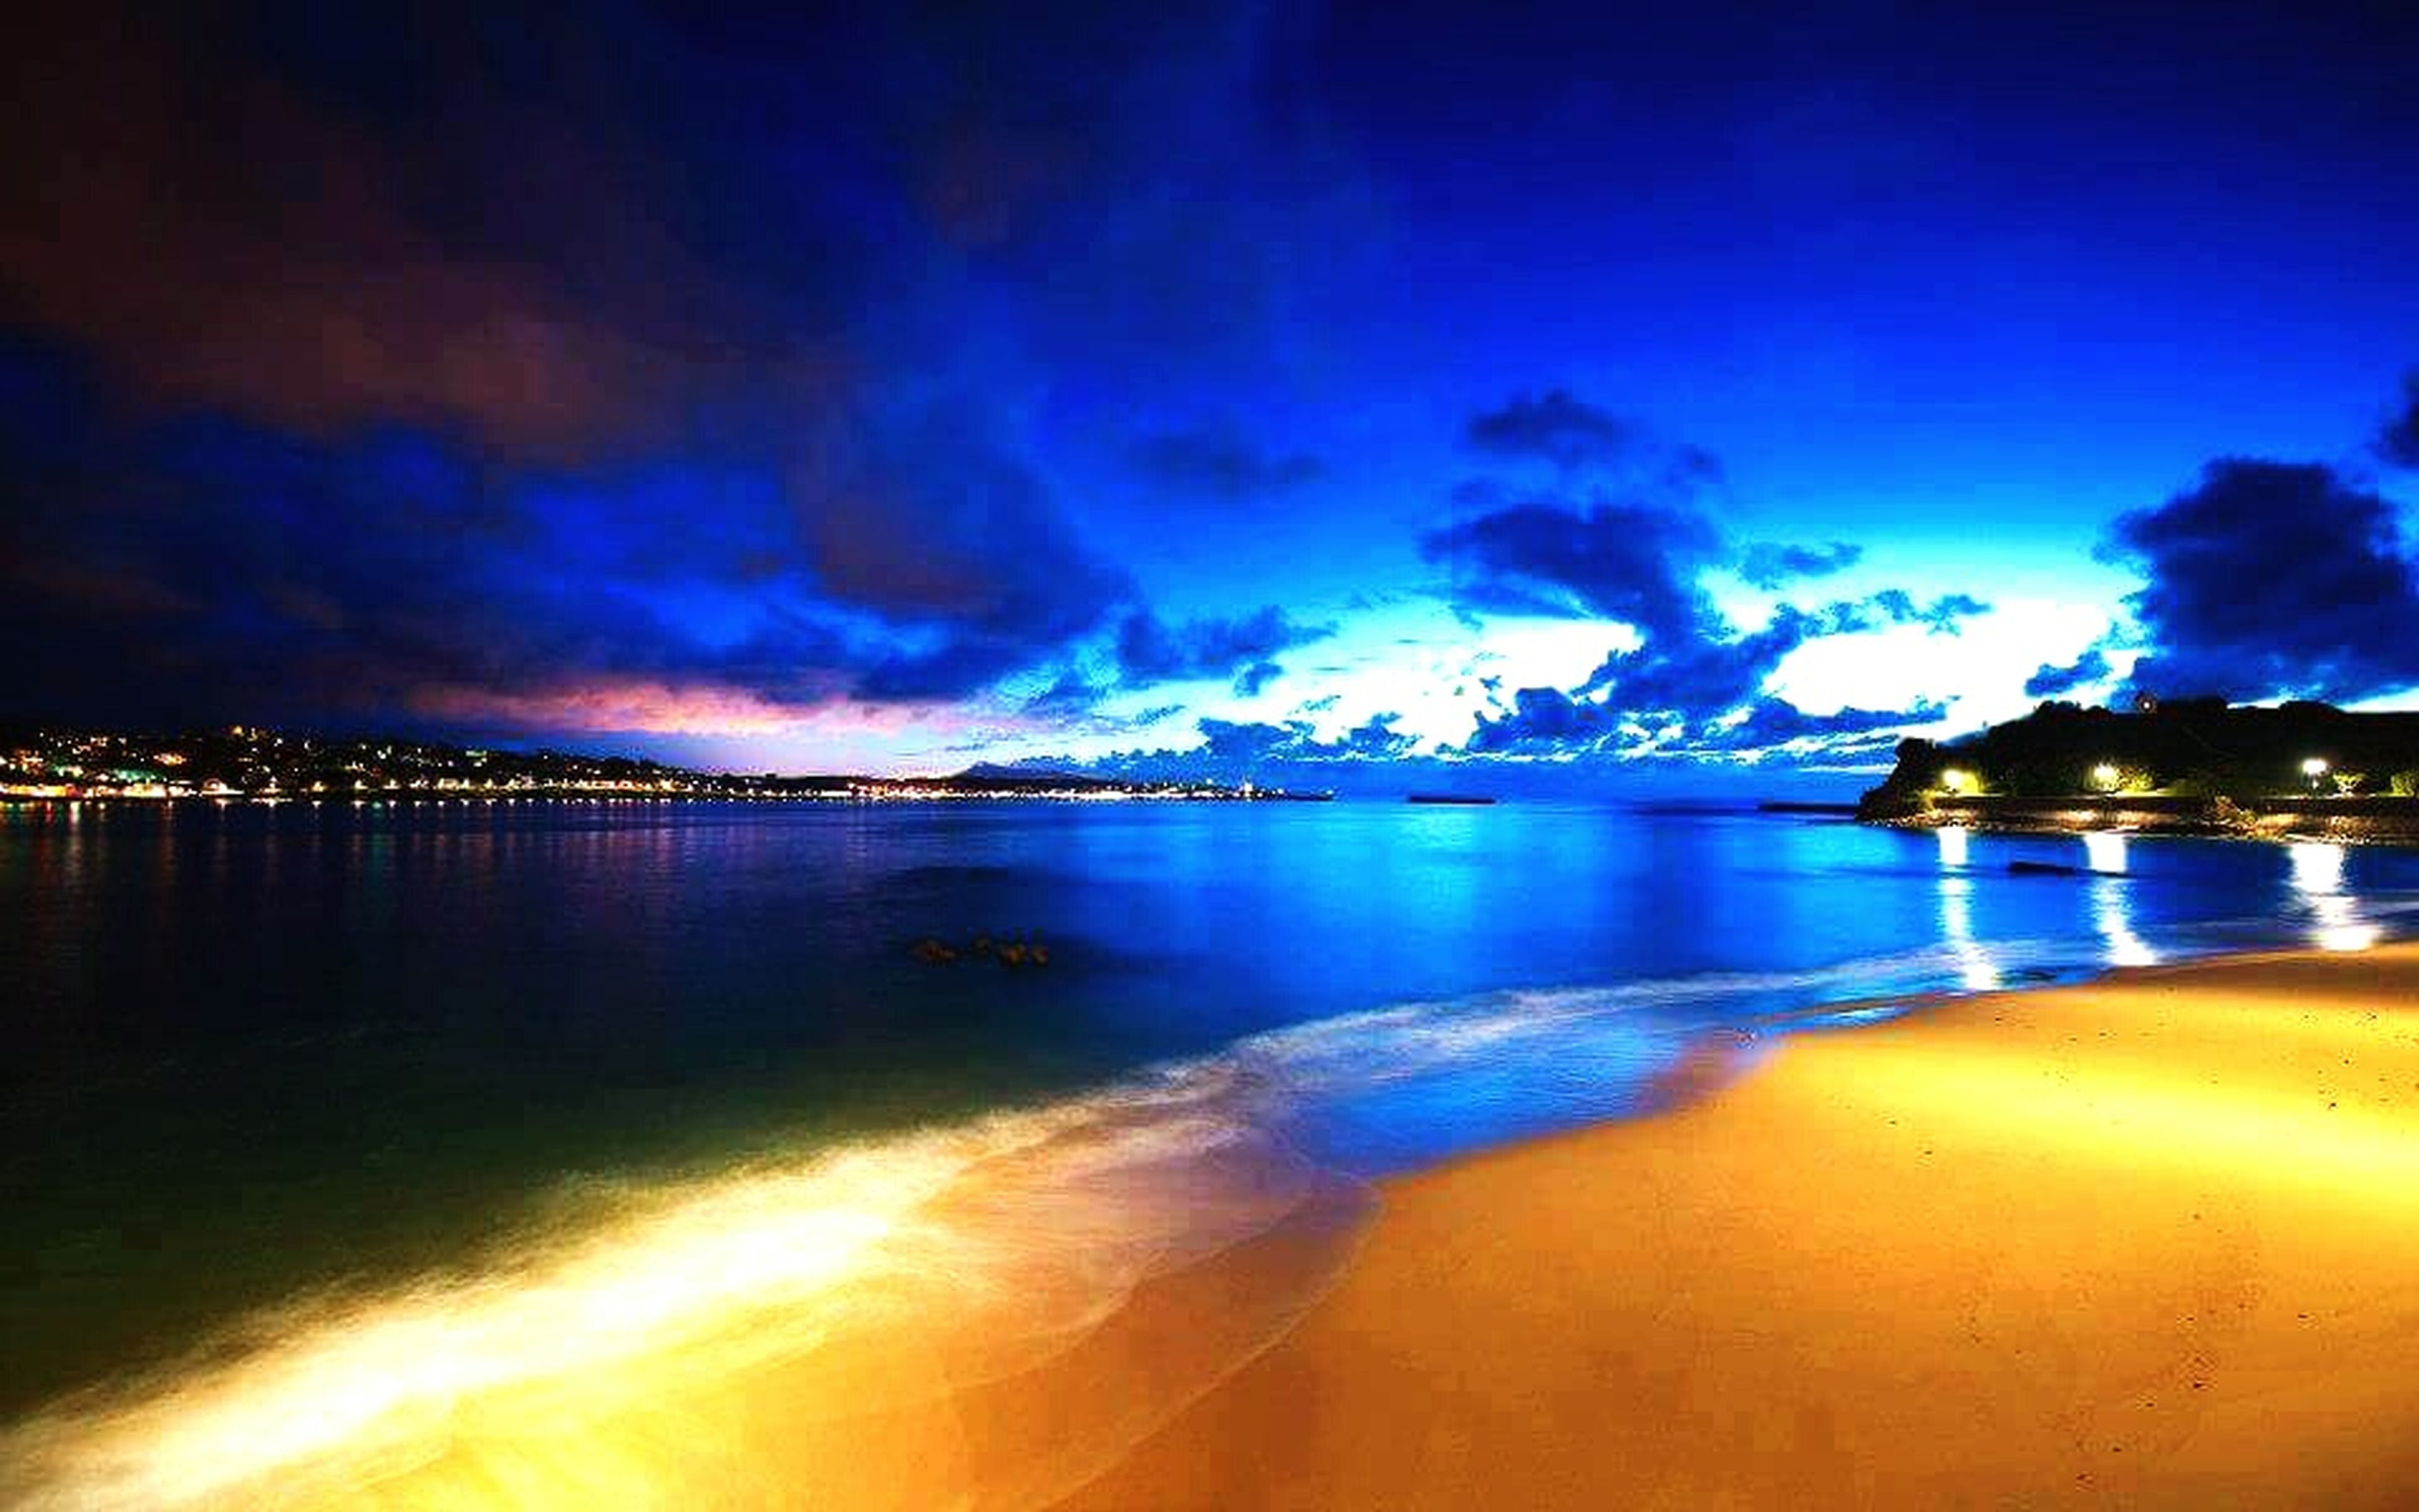 blue, illuminated, water, sky, tranquil scene, scenics, reflection, tranquility, city, sea, cloud - sky, cloud, beauty in nature, calm, nature, dramatic sky, no people, shore, blue color